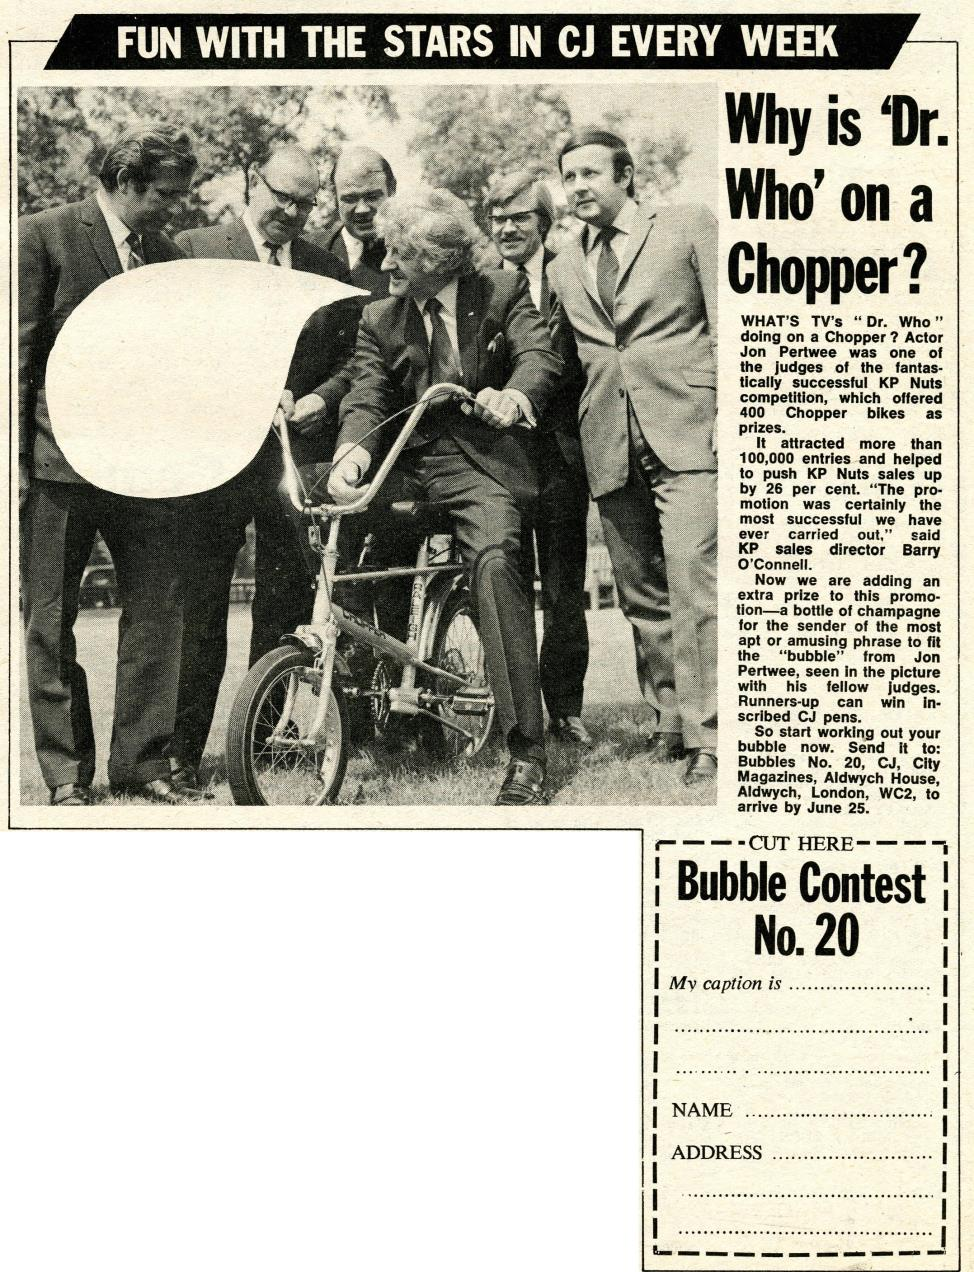 Competitors Journal, 19 June 1971